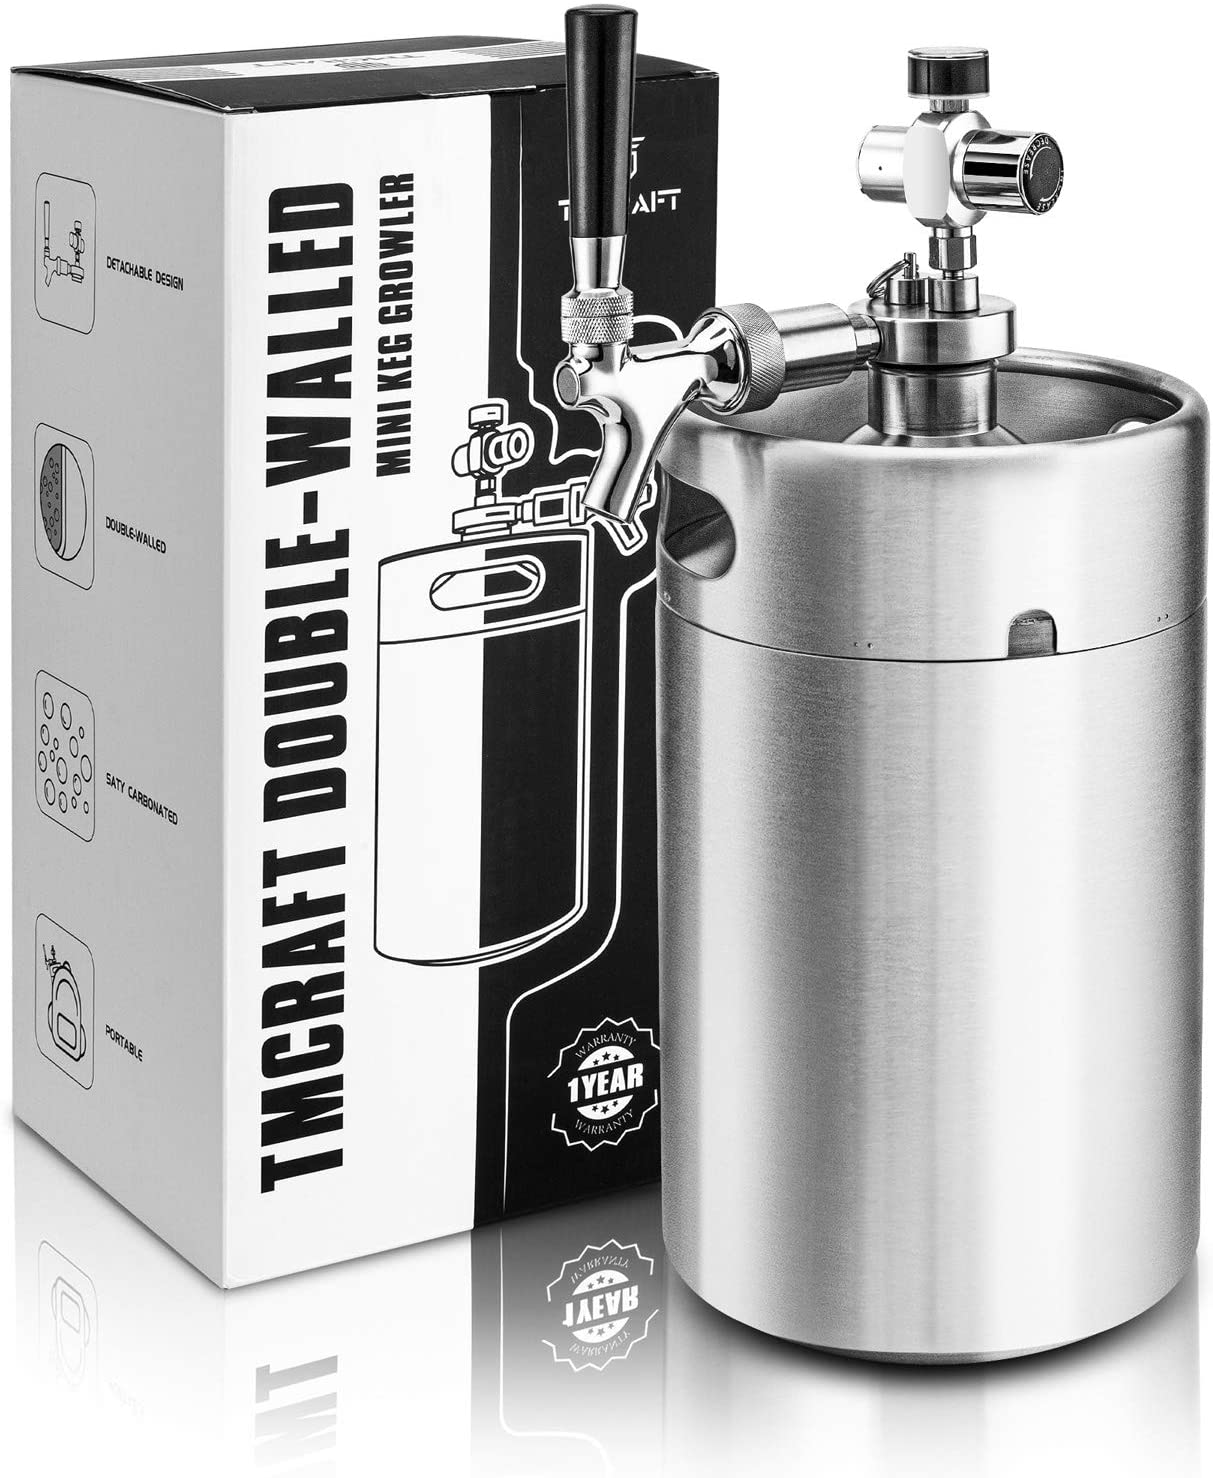 TMCRAFT 128OZ Double-Walled Mini Keg Growler, Pressurized Home Beer Dispenser System with Detachable Faucet and Regulator Keep Fresh and Carbonation for Craft Beer Draft/Homebrew